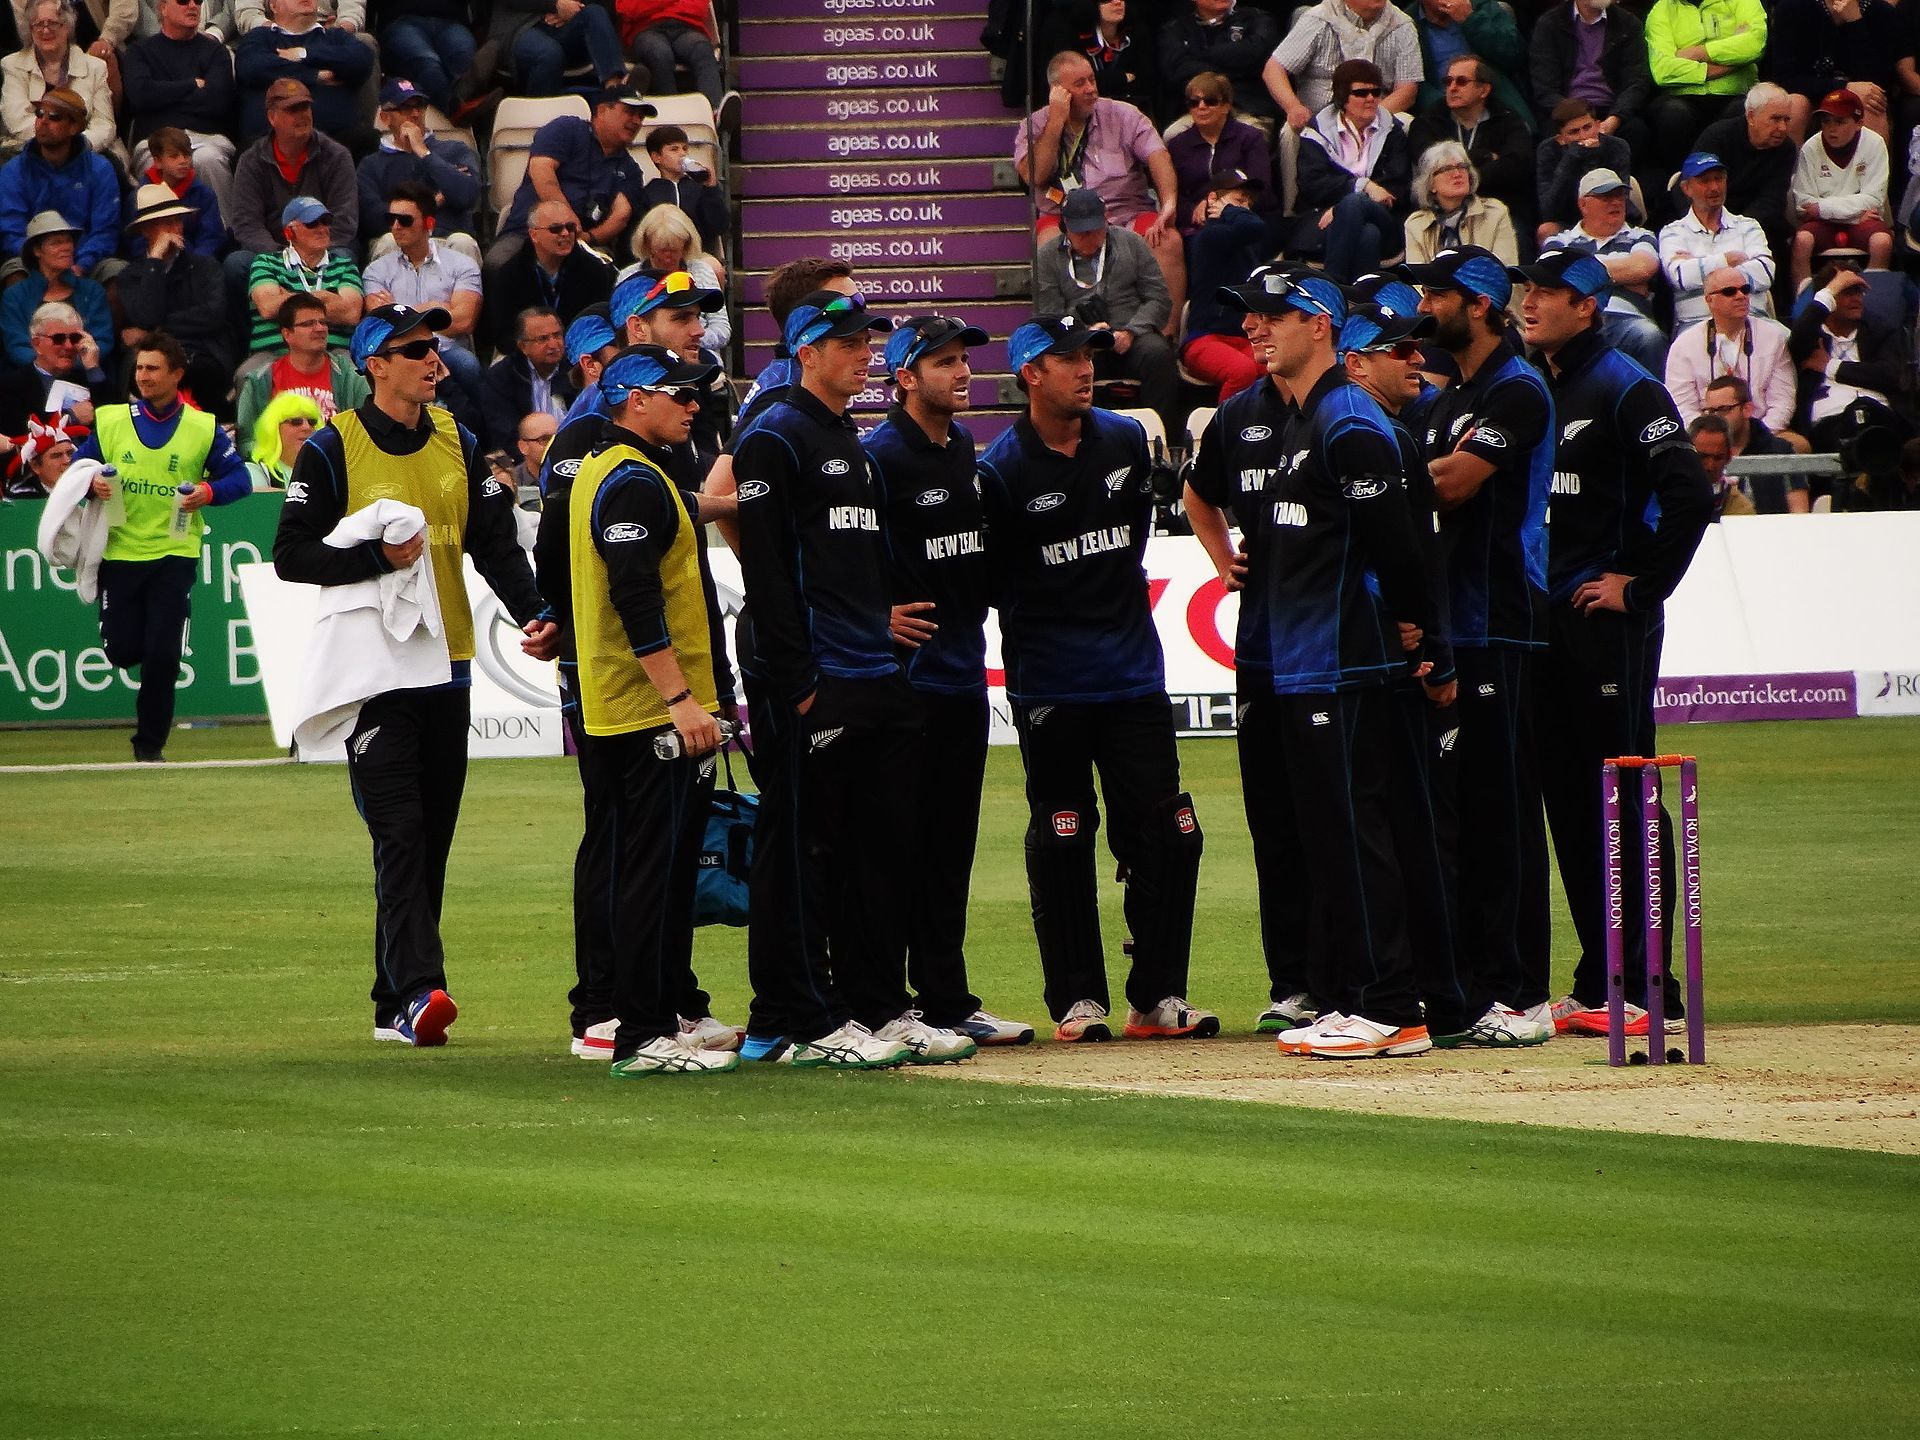 One Day At A Time Wikipedia: List Of New Zealand One Day International Cricket Records